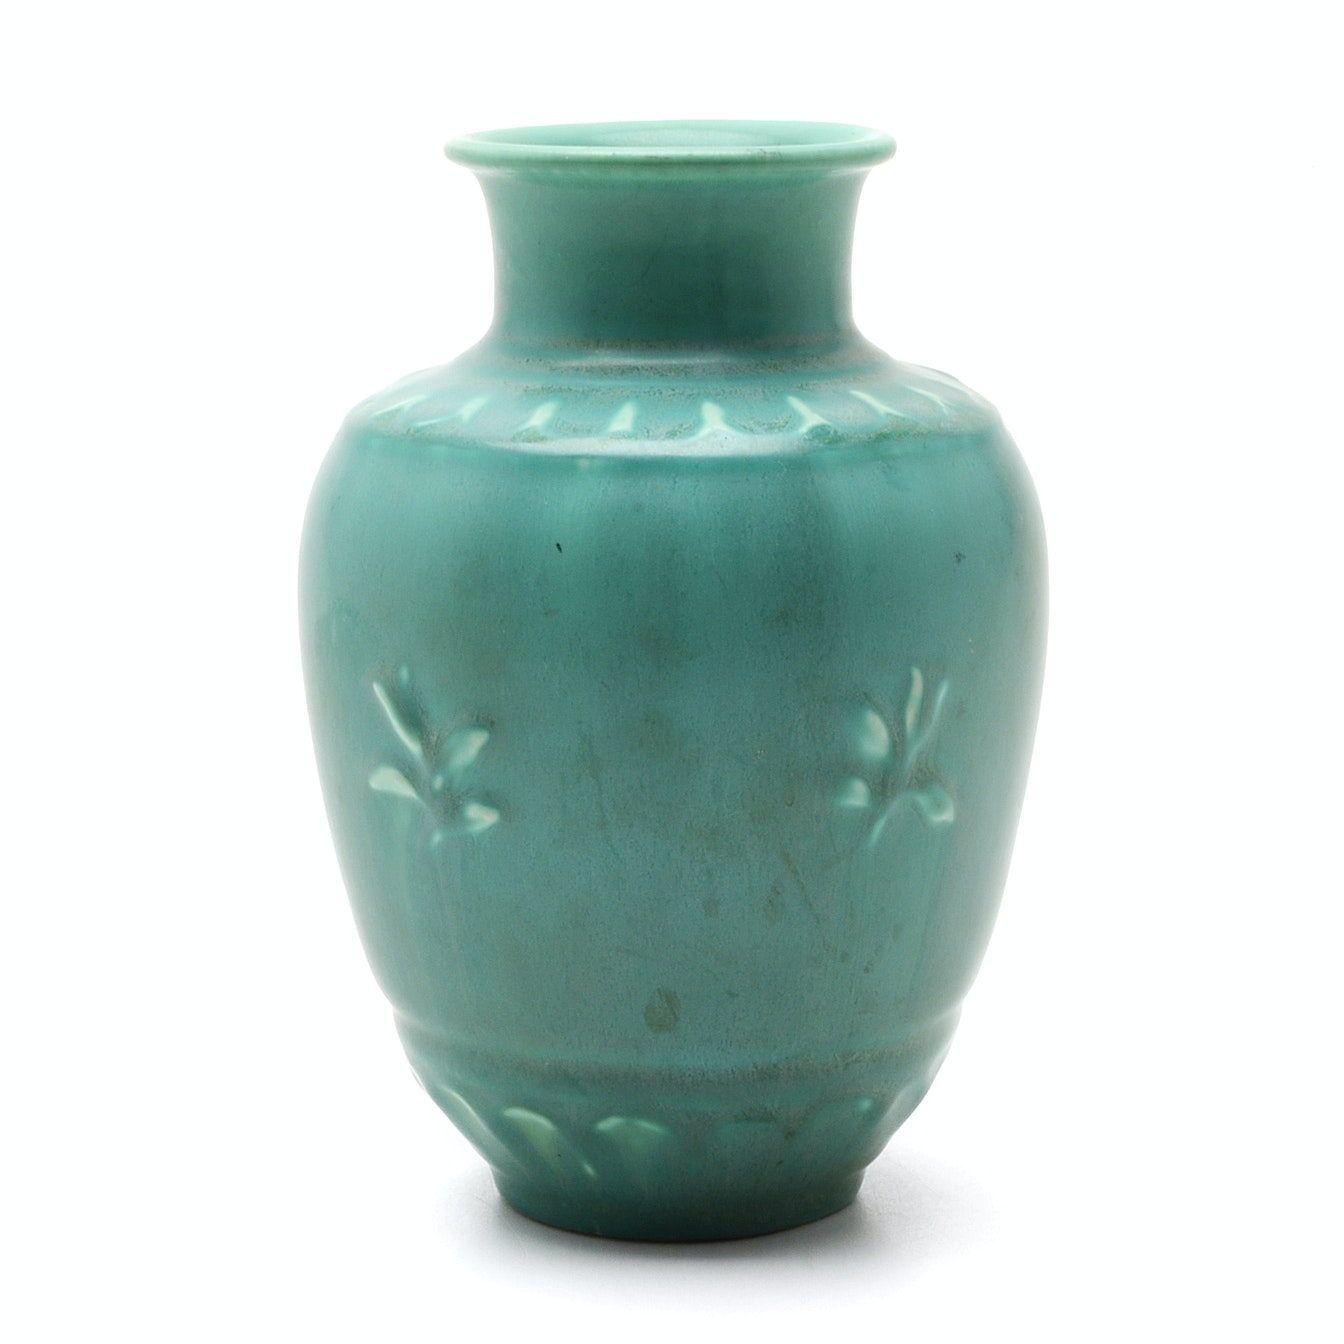 1944 Rookwood Art Pottery Vase in Green Matte Glaze